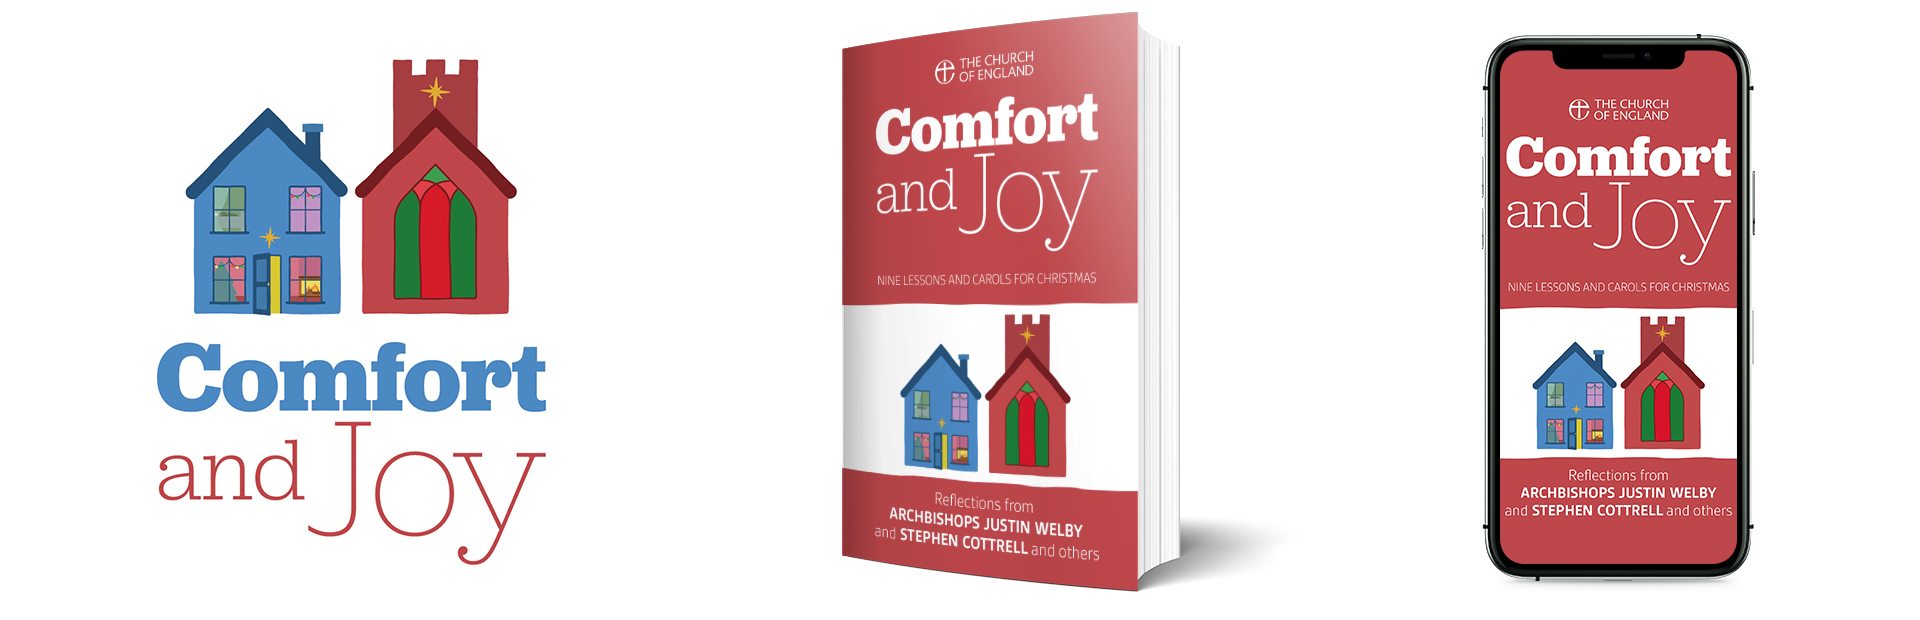 Comfort and Joy book and app